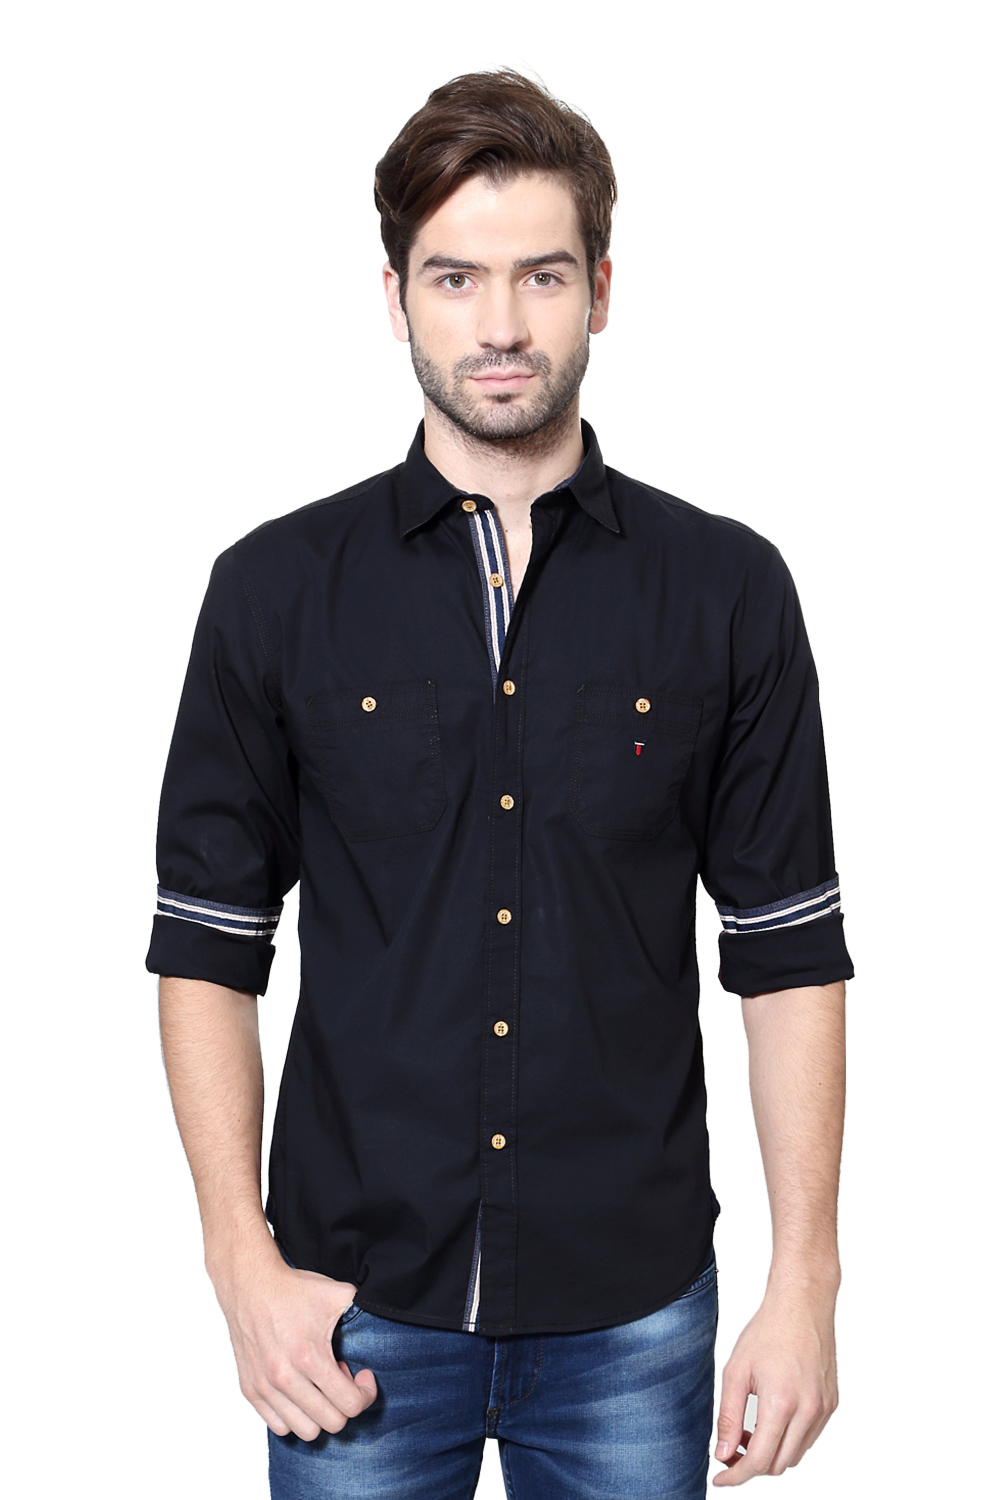 LP Jeans Shirts, Louis Philippe Black Shirt for Men at ...